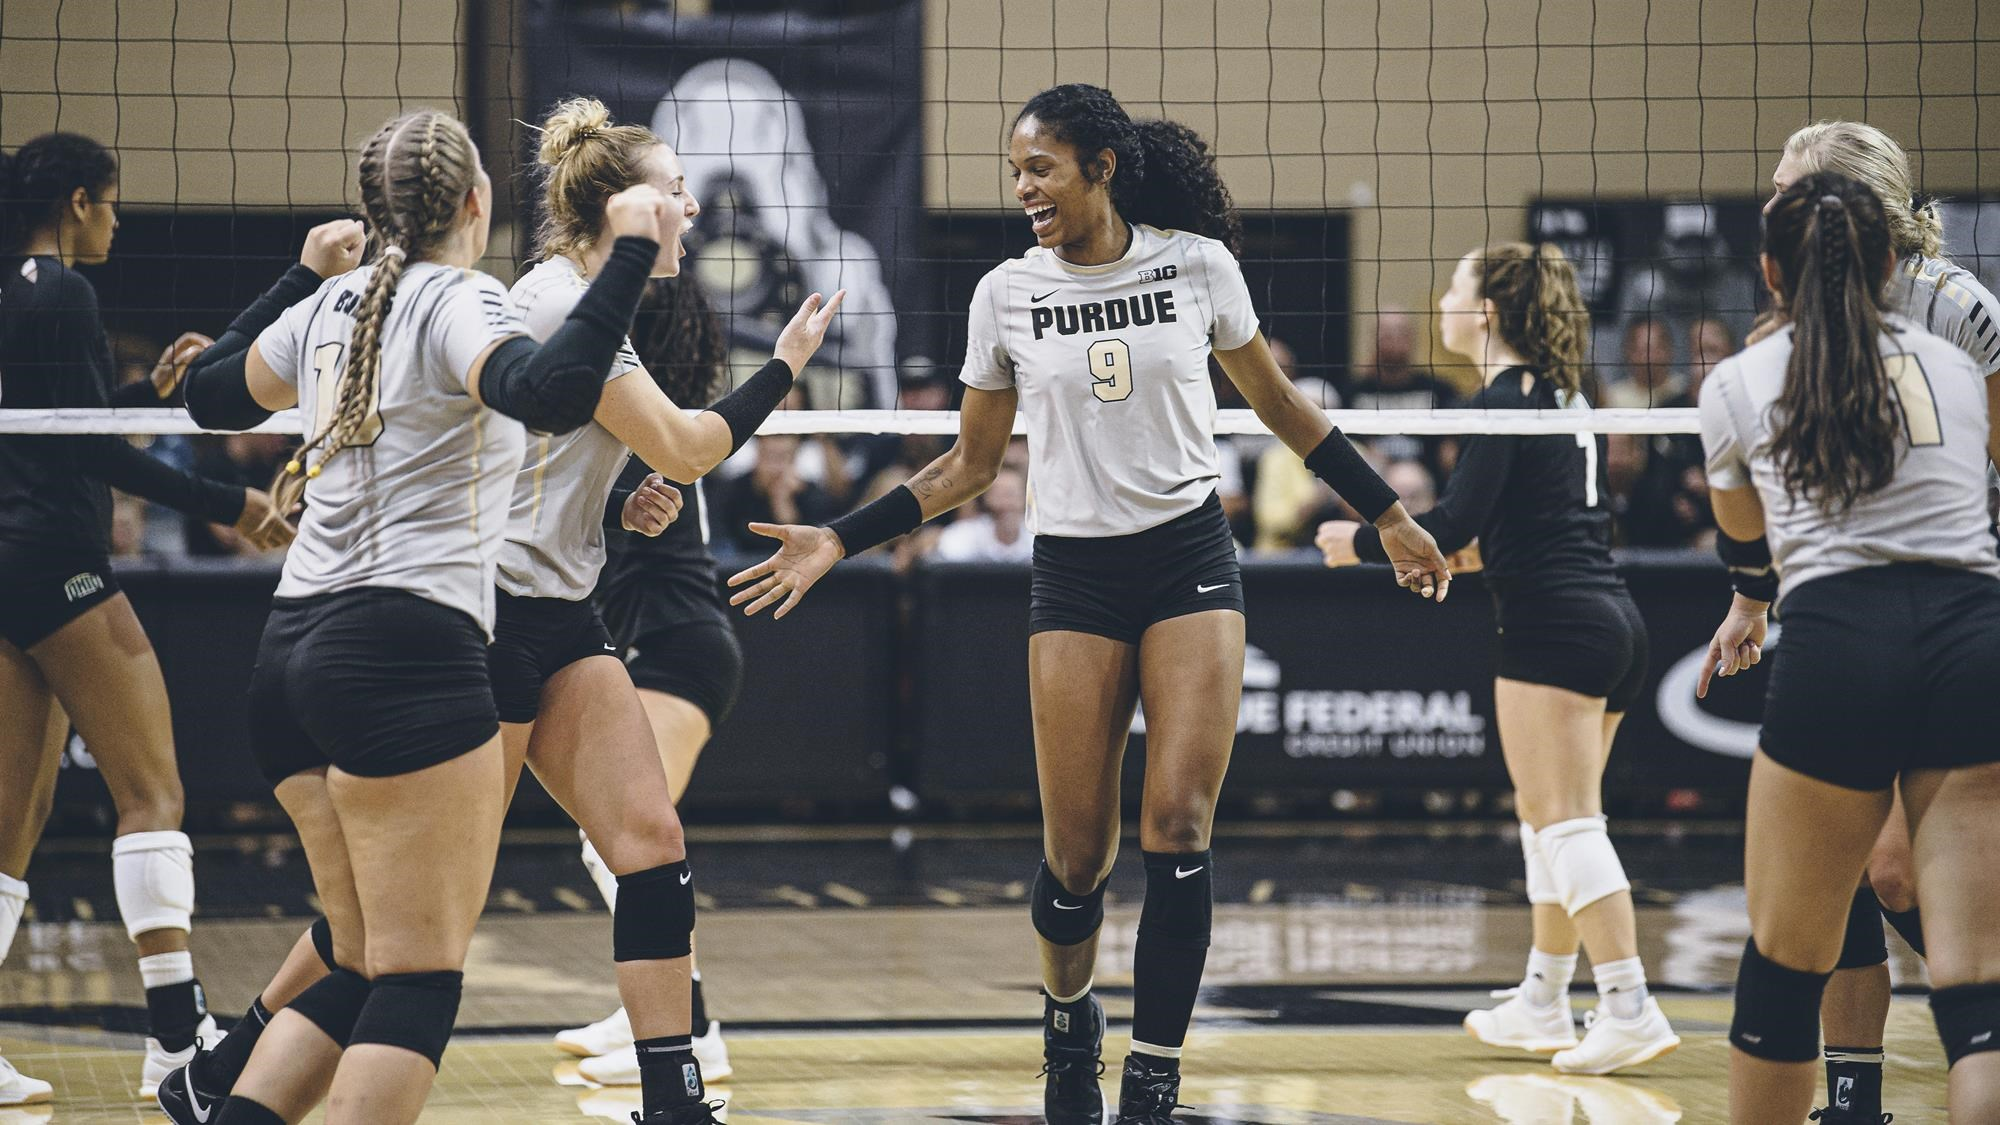 Shavona Cuttino Volleyball Purdue University Athletics